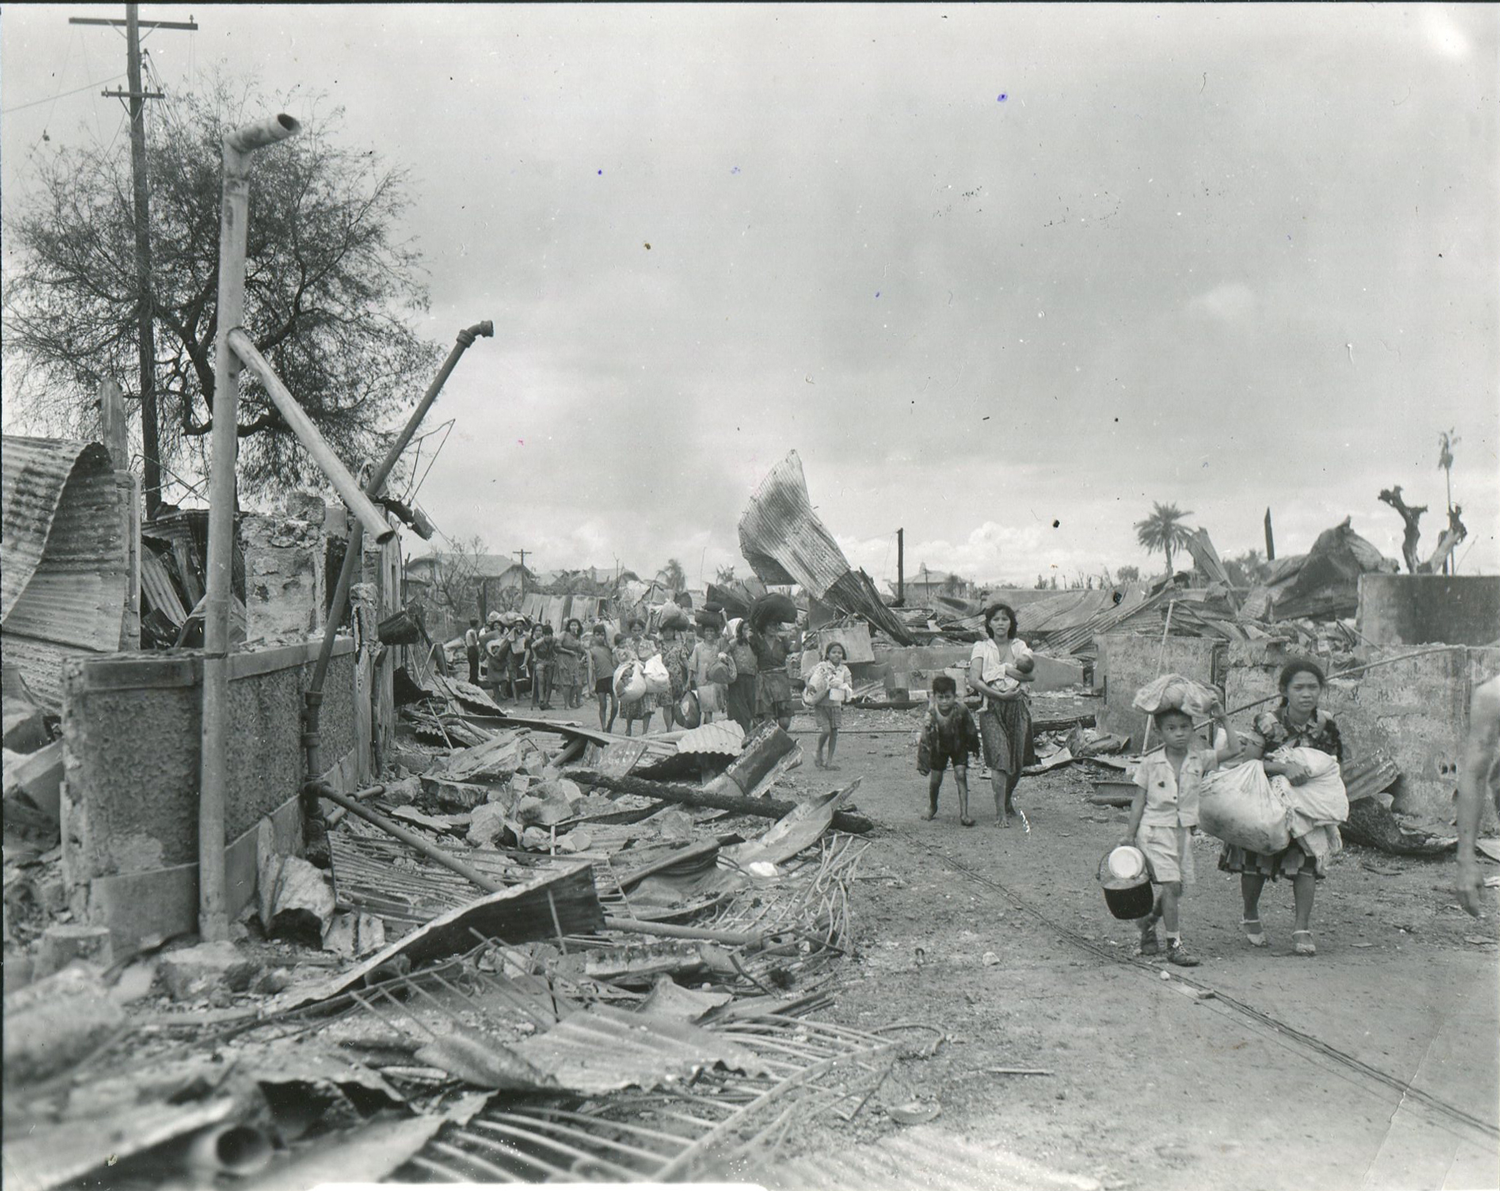 Filipino refugees make their way through the ruined city on February 12, 1945. (National Archives)